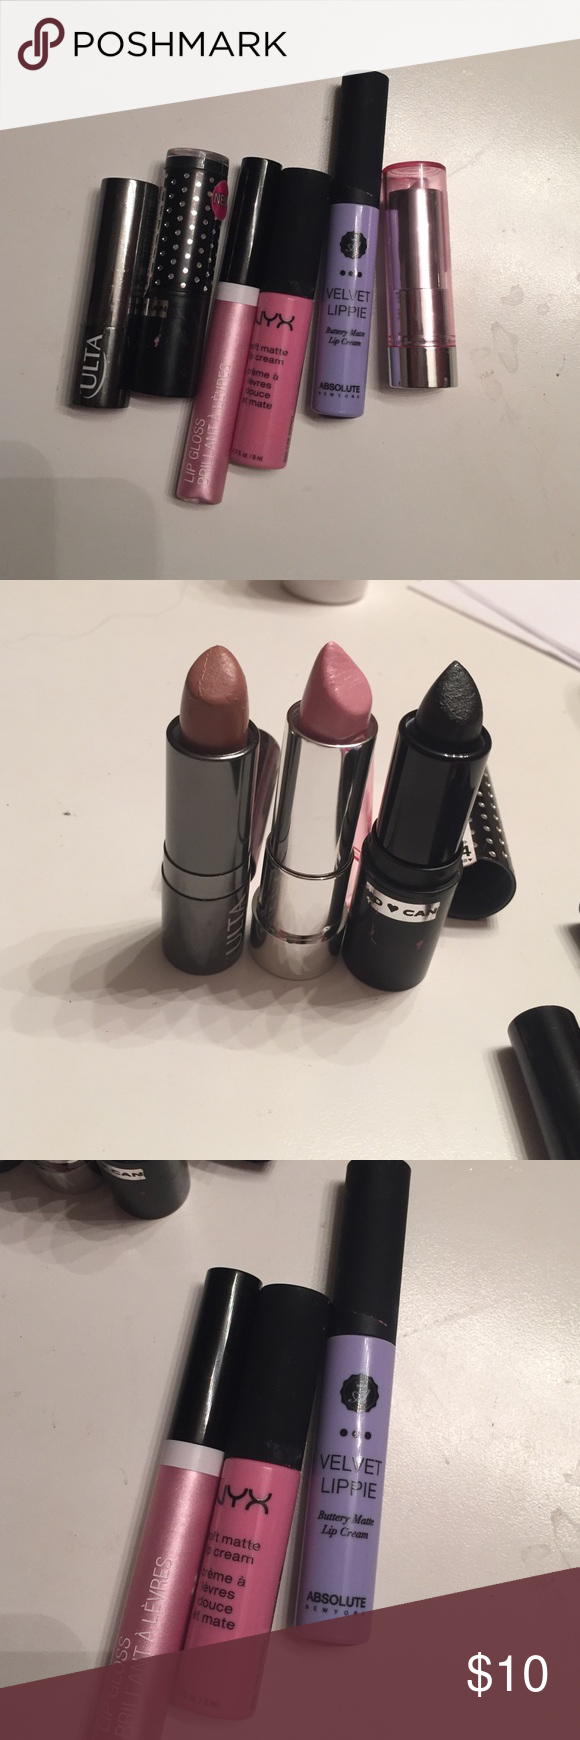 6 lipsticks/lipglosses Lot of 6 never used/only used once or twice lipsticks & lipglosses. The ones that I've used have been sanitized.   Hard candy: 'black diamond', essence: 'frosted', ulta: 'coffee break 224', NYX soft matte lip cream: 'Sydney', wet n wild: 'sinless 544', & absolute: 'wonderland'. They range from nudes to light pinks to lavender to jet black! NYX Makeup Lipstick